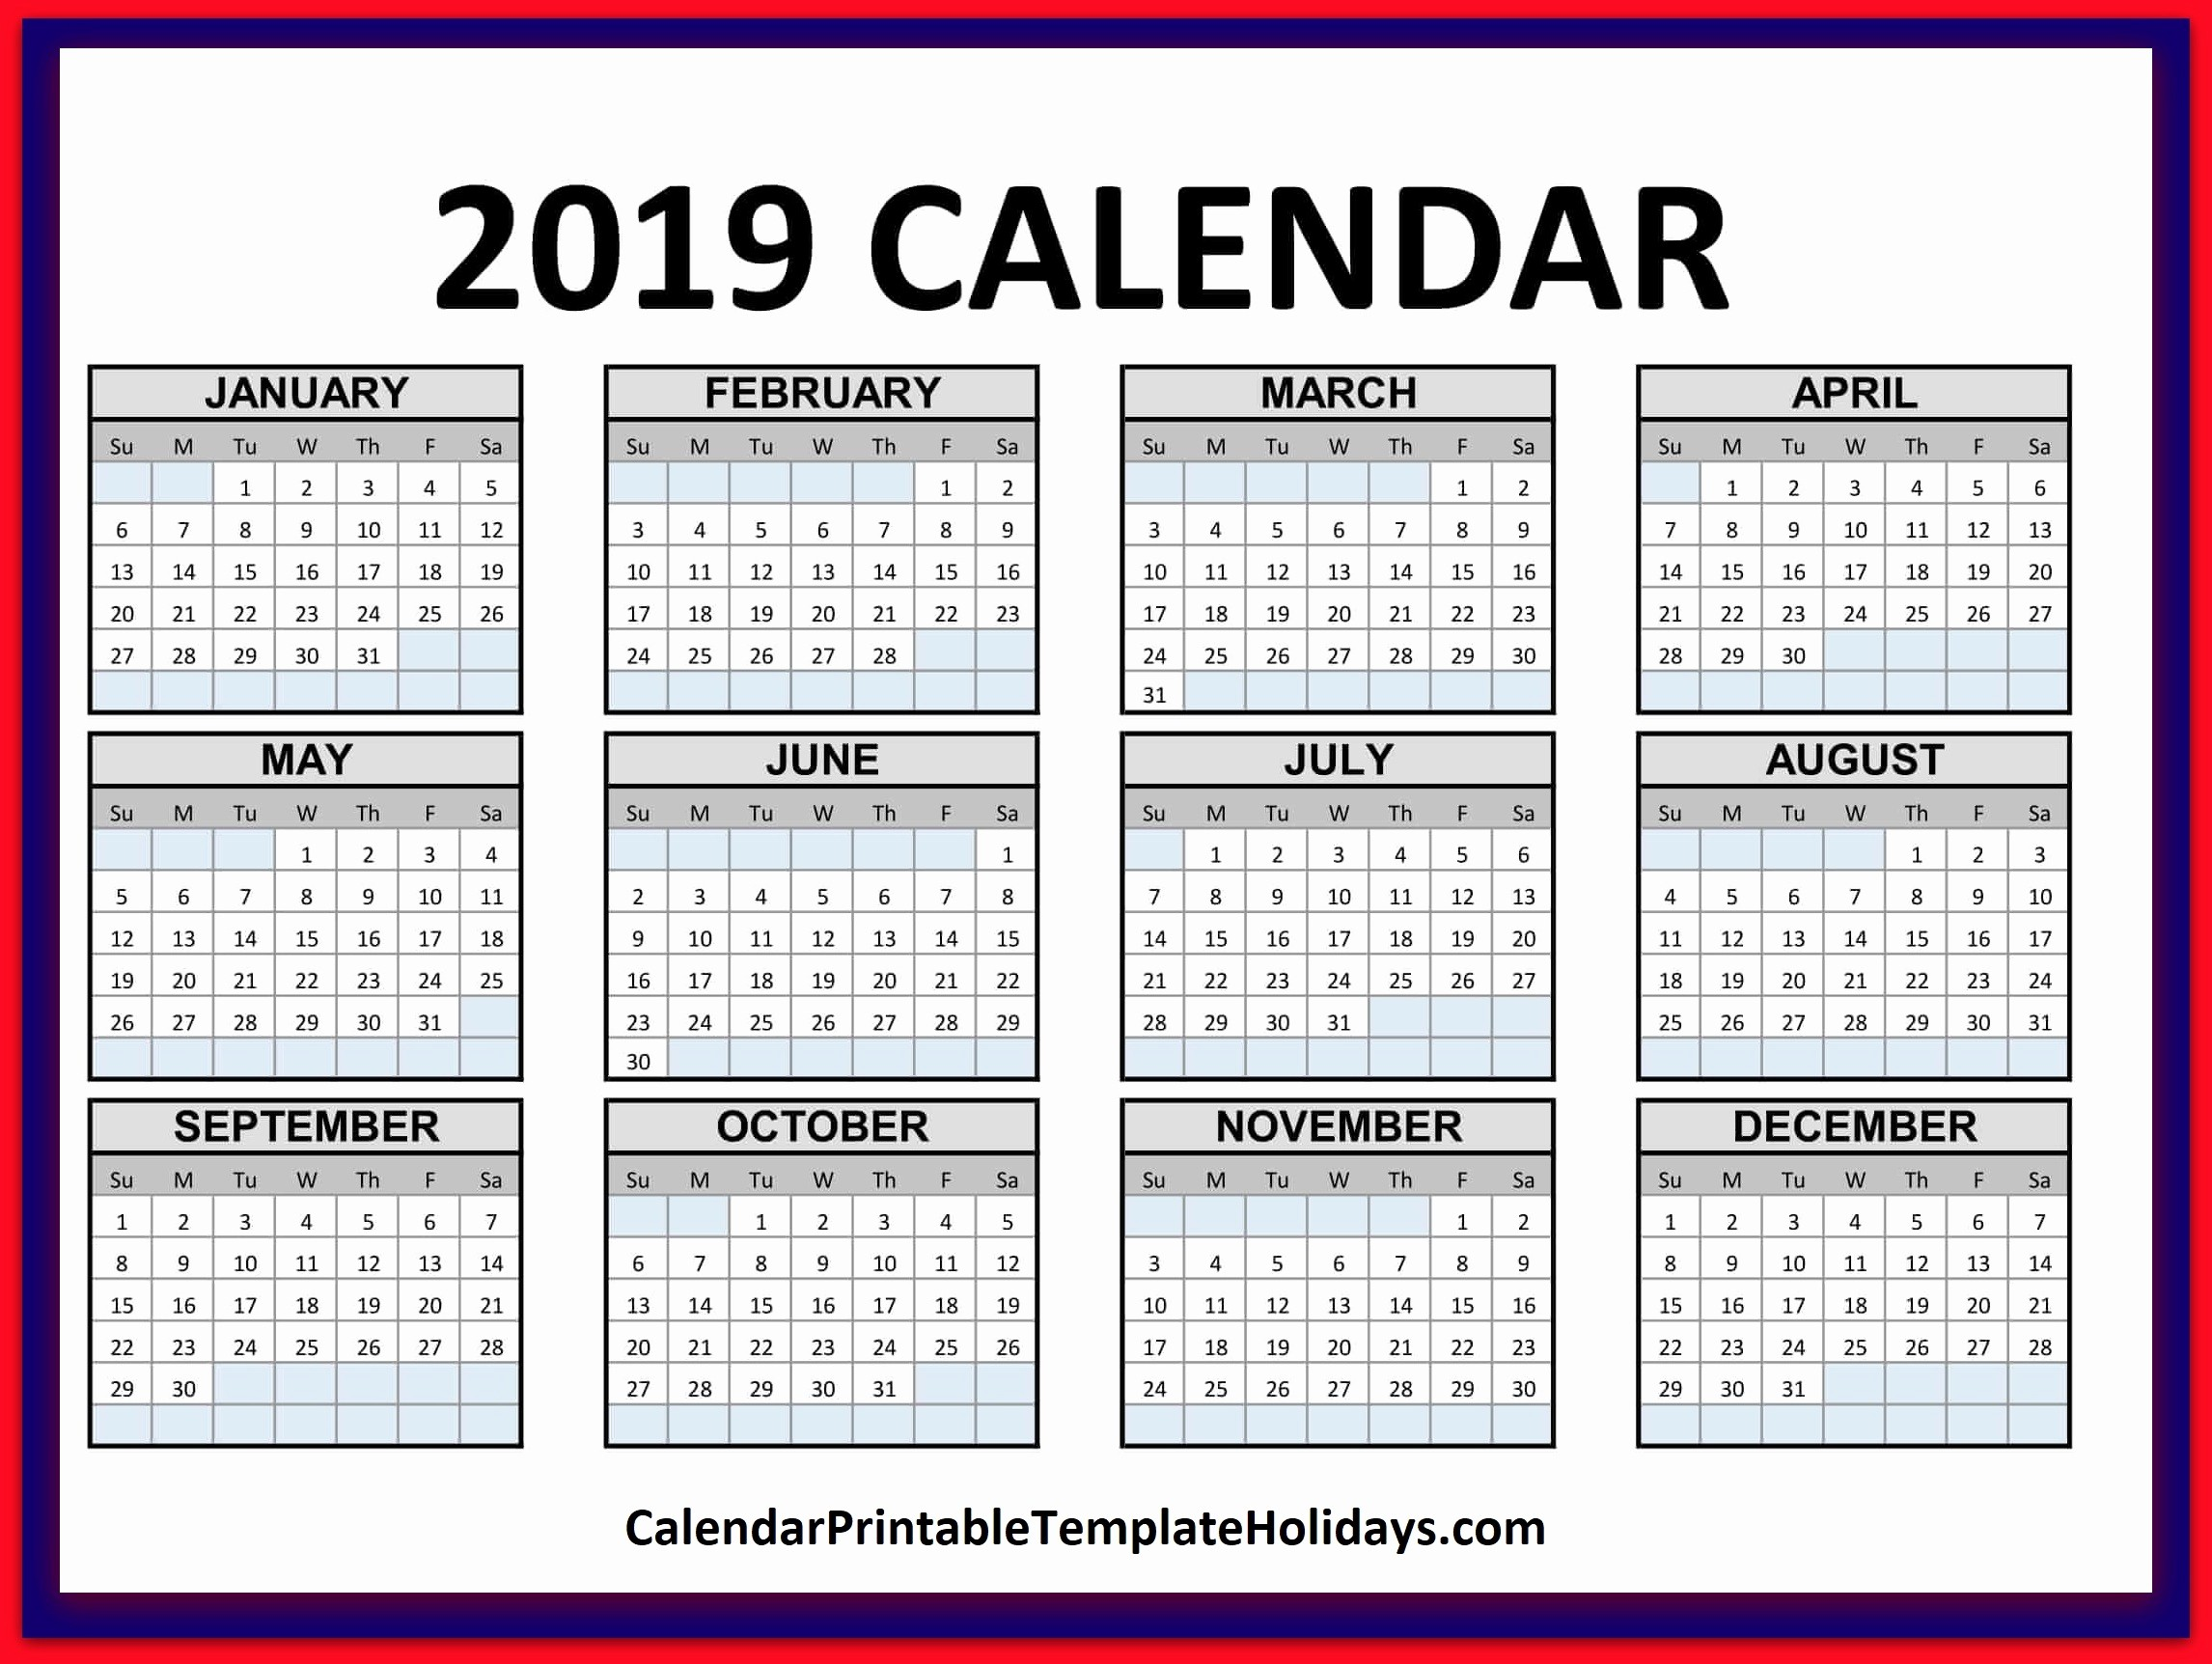 2019 Word Calendar with Holidays Fresh 2019 Calendar Printable Template Holidays Pdf Word Excel